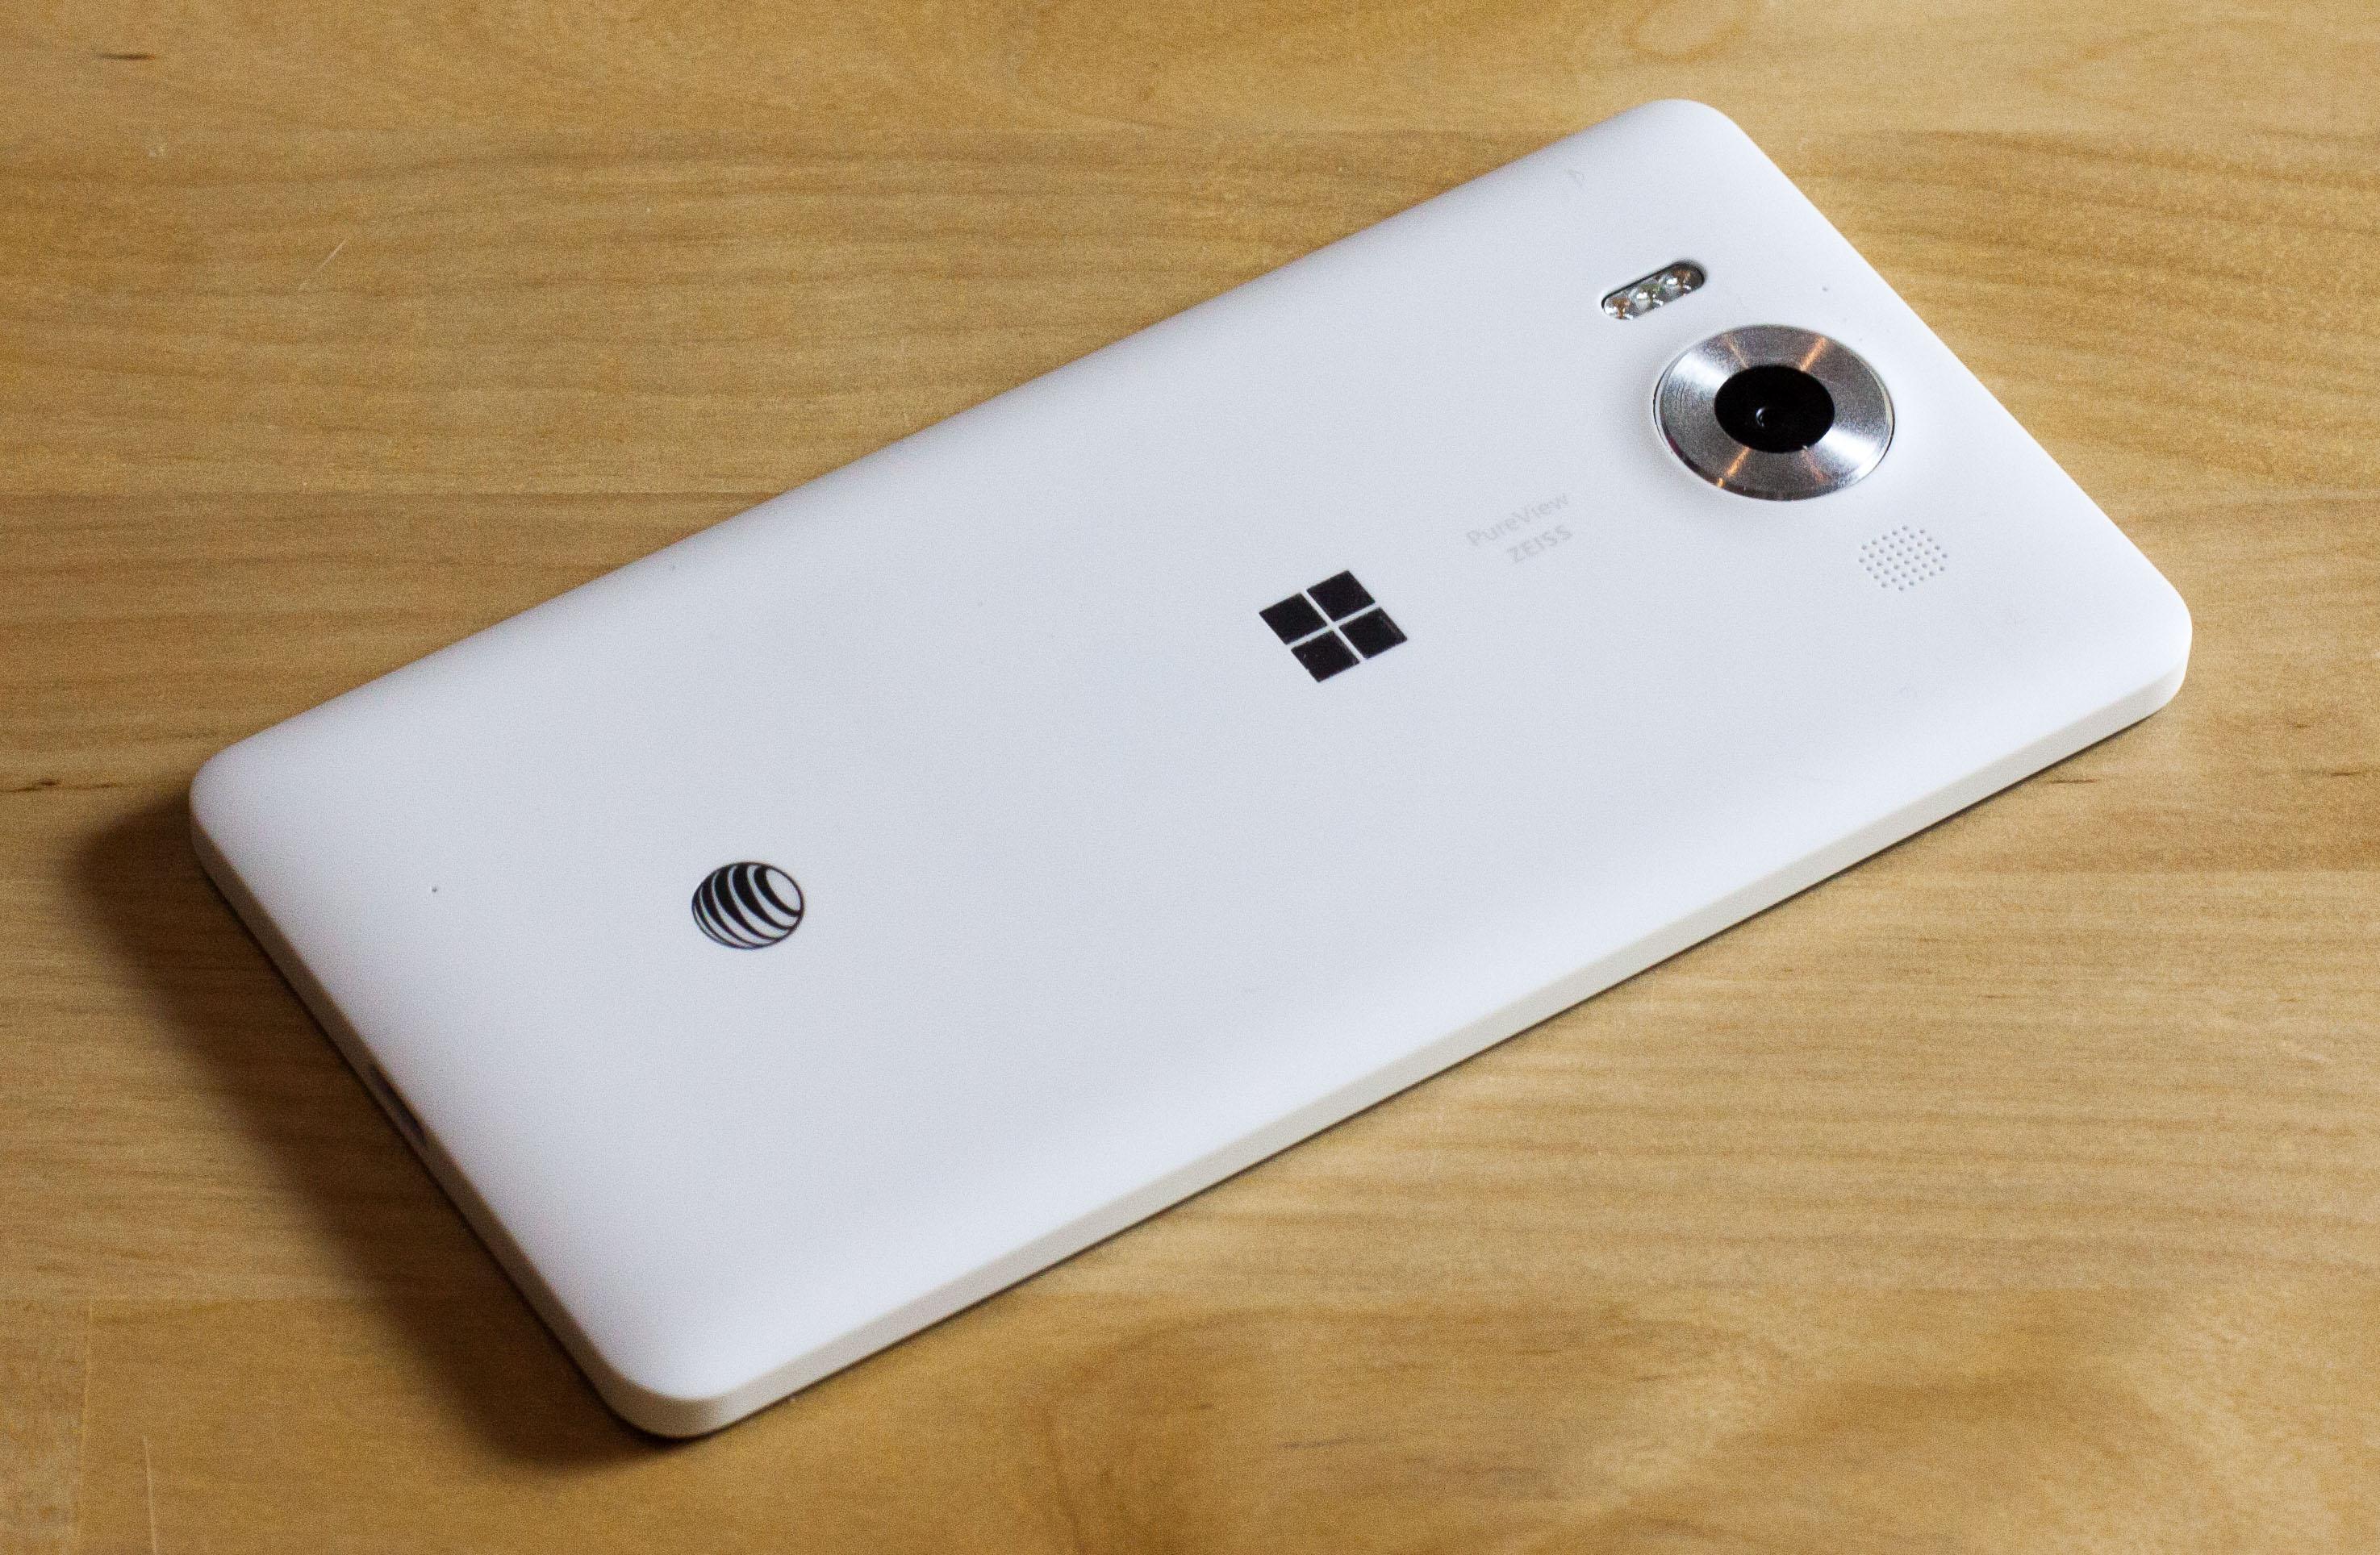 The last high-end phones Microsoft released were the Lumia 950 (pictured) and 950 XL, which came out in November 2015.